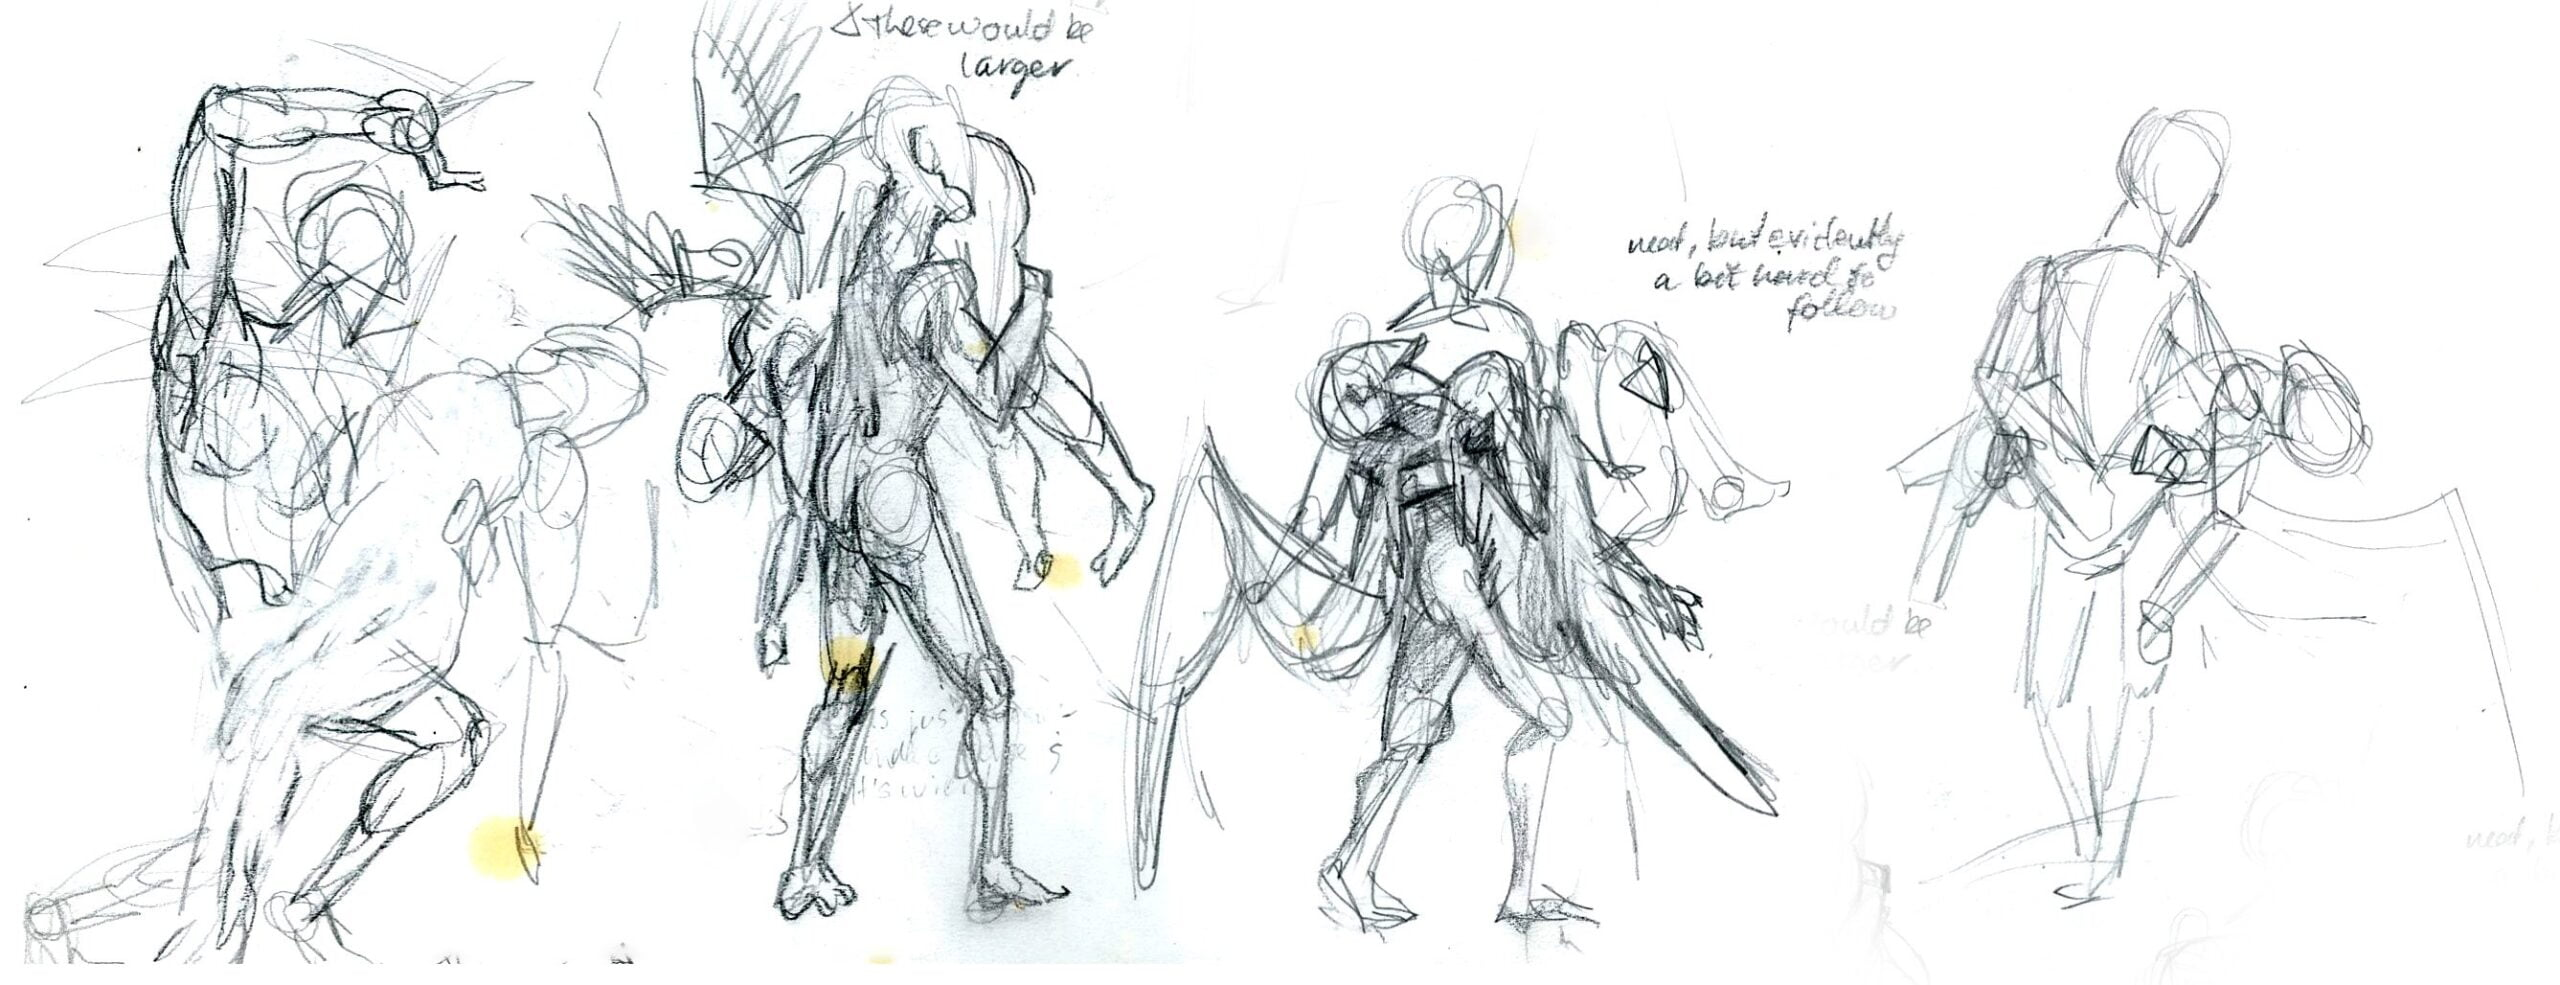 sketches for lamentation of gaia oil painting sci-fi art